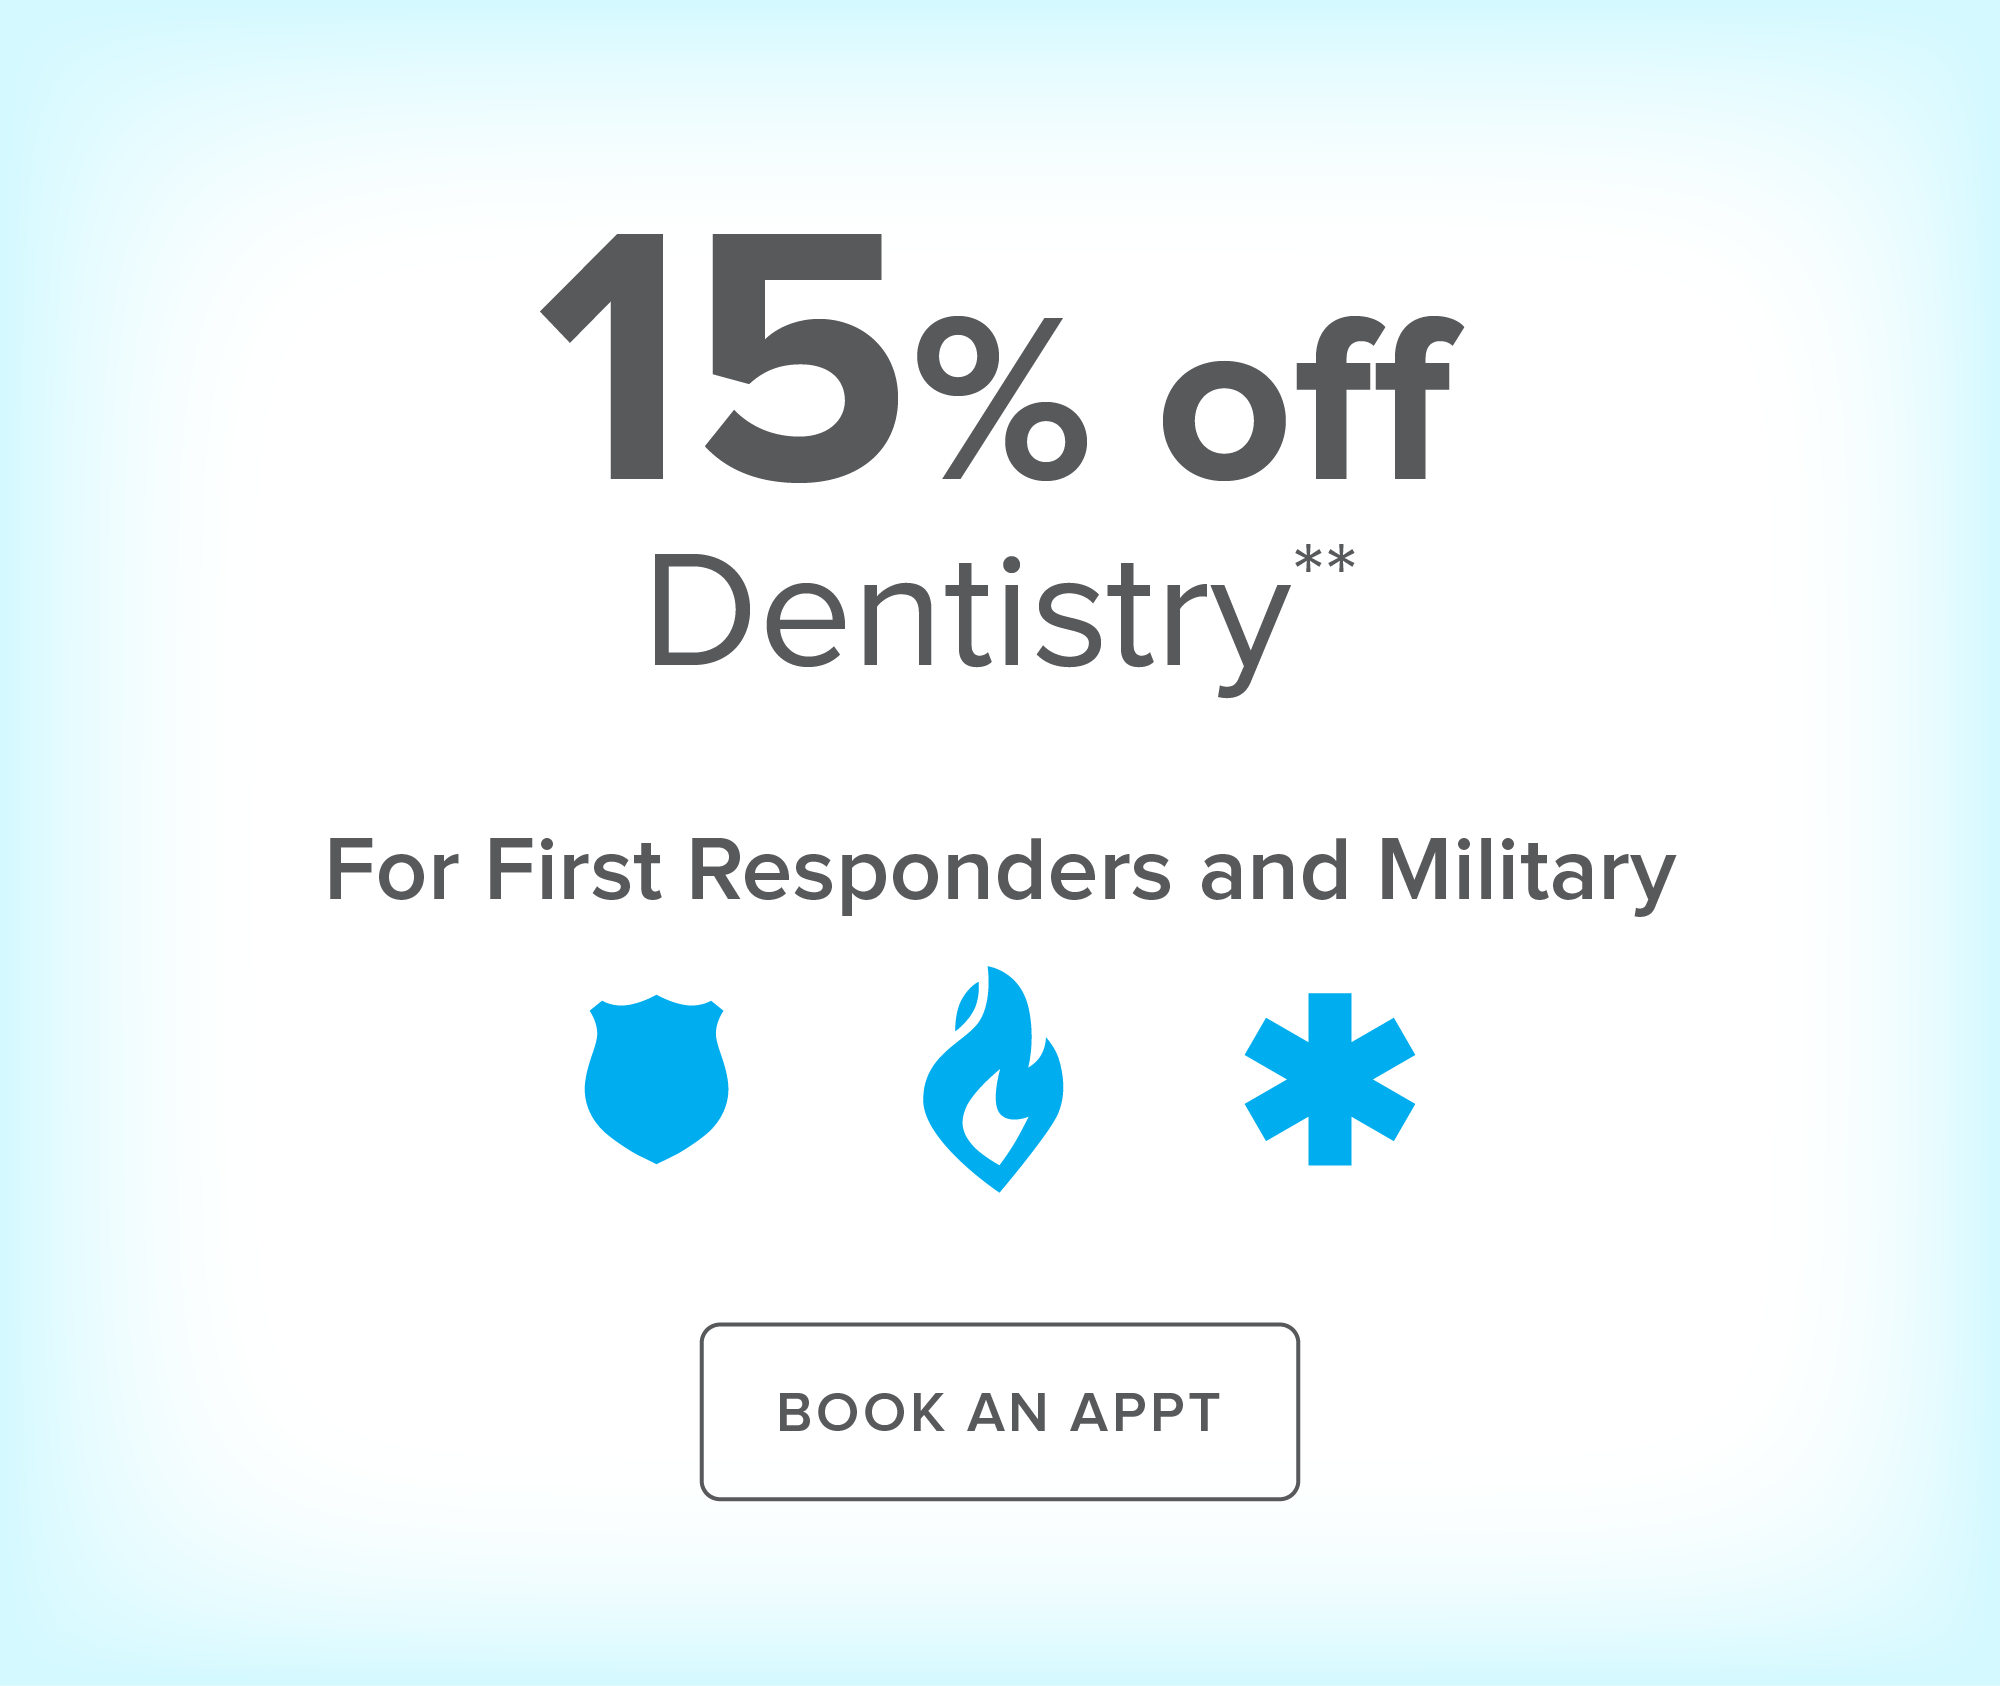 Baytown Modern Dentistry - 15% off Dentistry for First Responders and Military